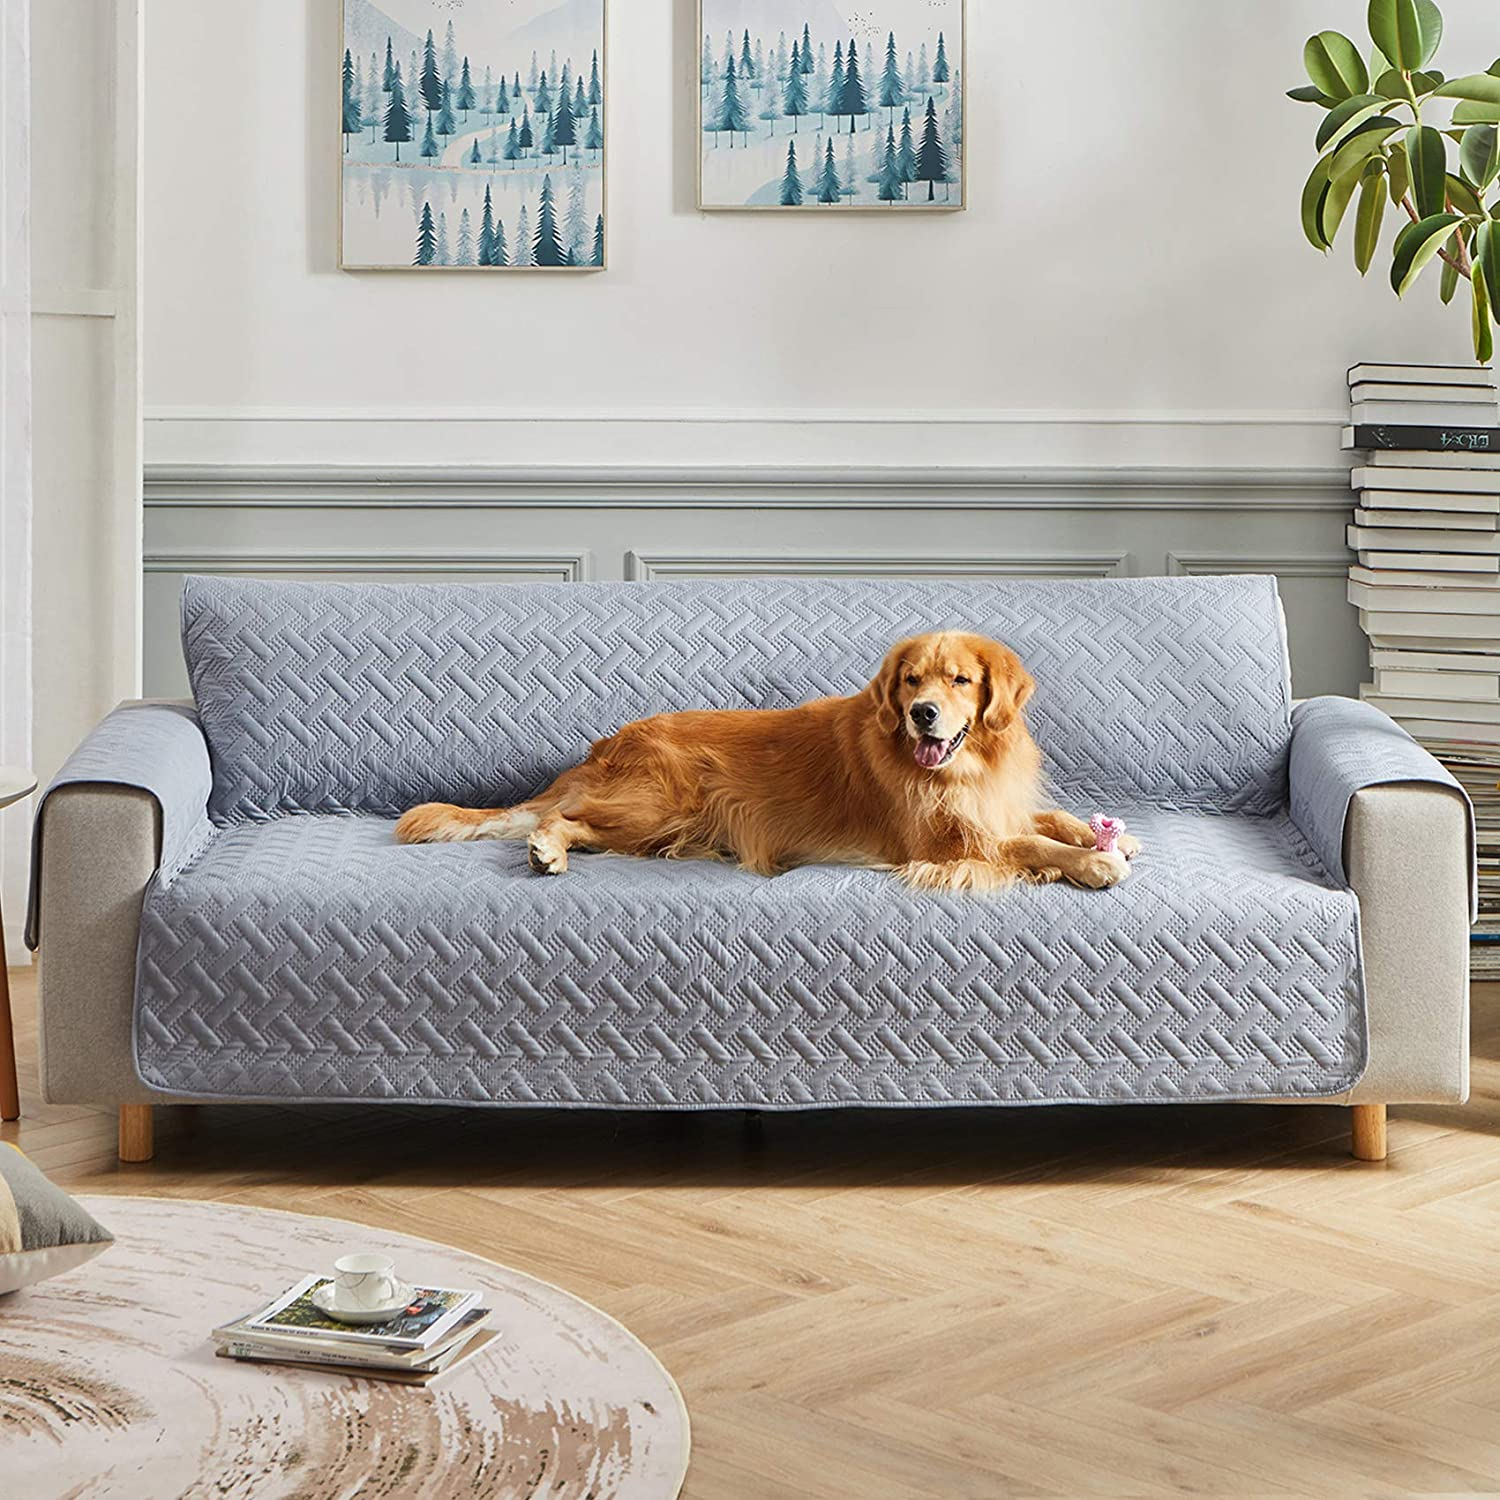 WESTERN HOME WH Waterproof Sofa Slipcover, Pet Furniture Cover Sofa Pet Cover Washable Couch Cover for 3 Cushion with Non Slip Bottom for Kids Pets Dog Cat(Sofa,Gray)